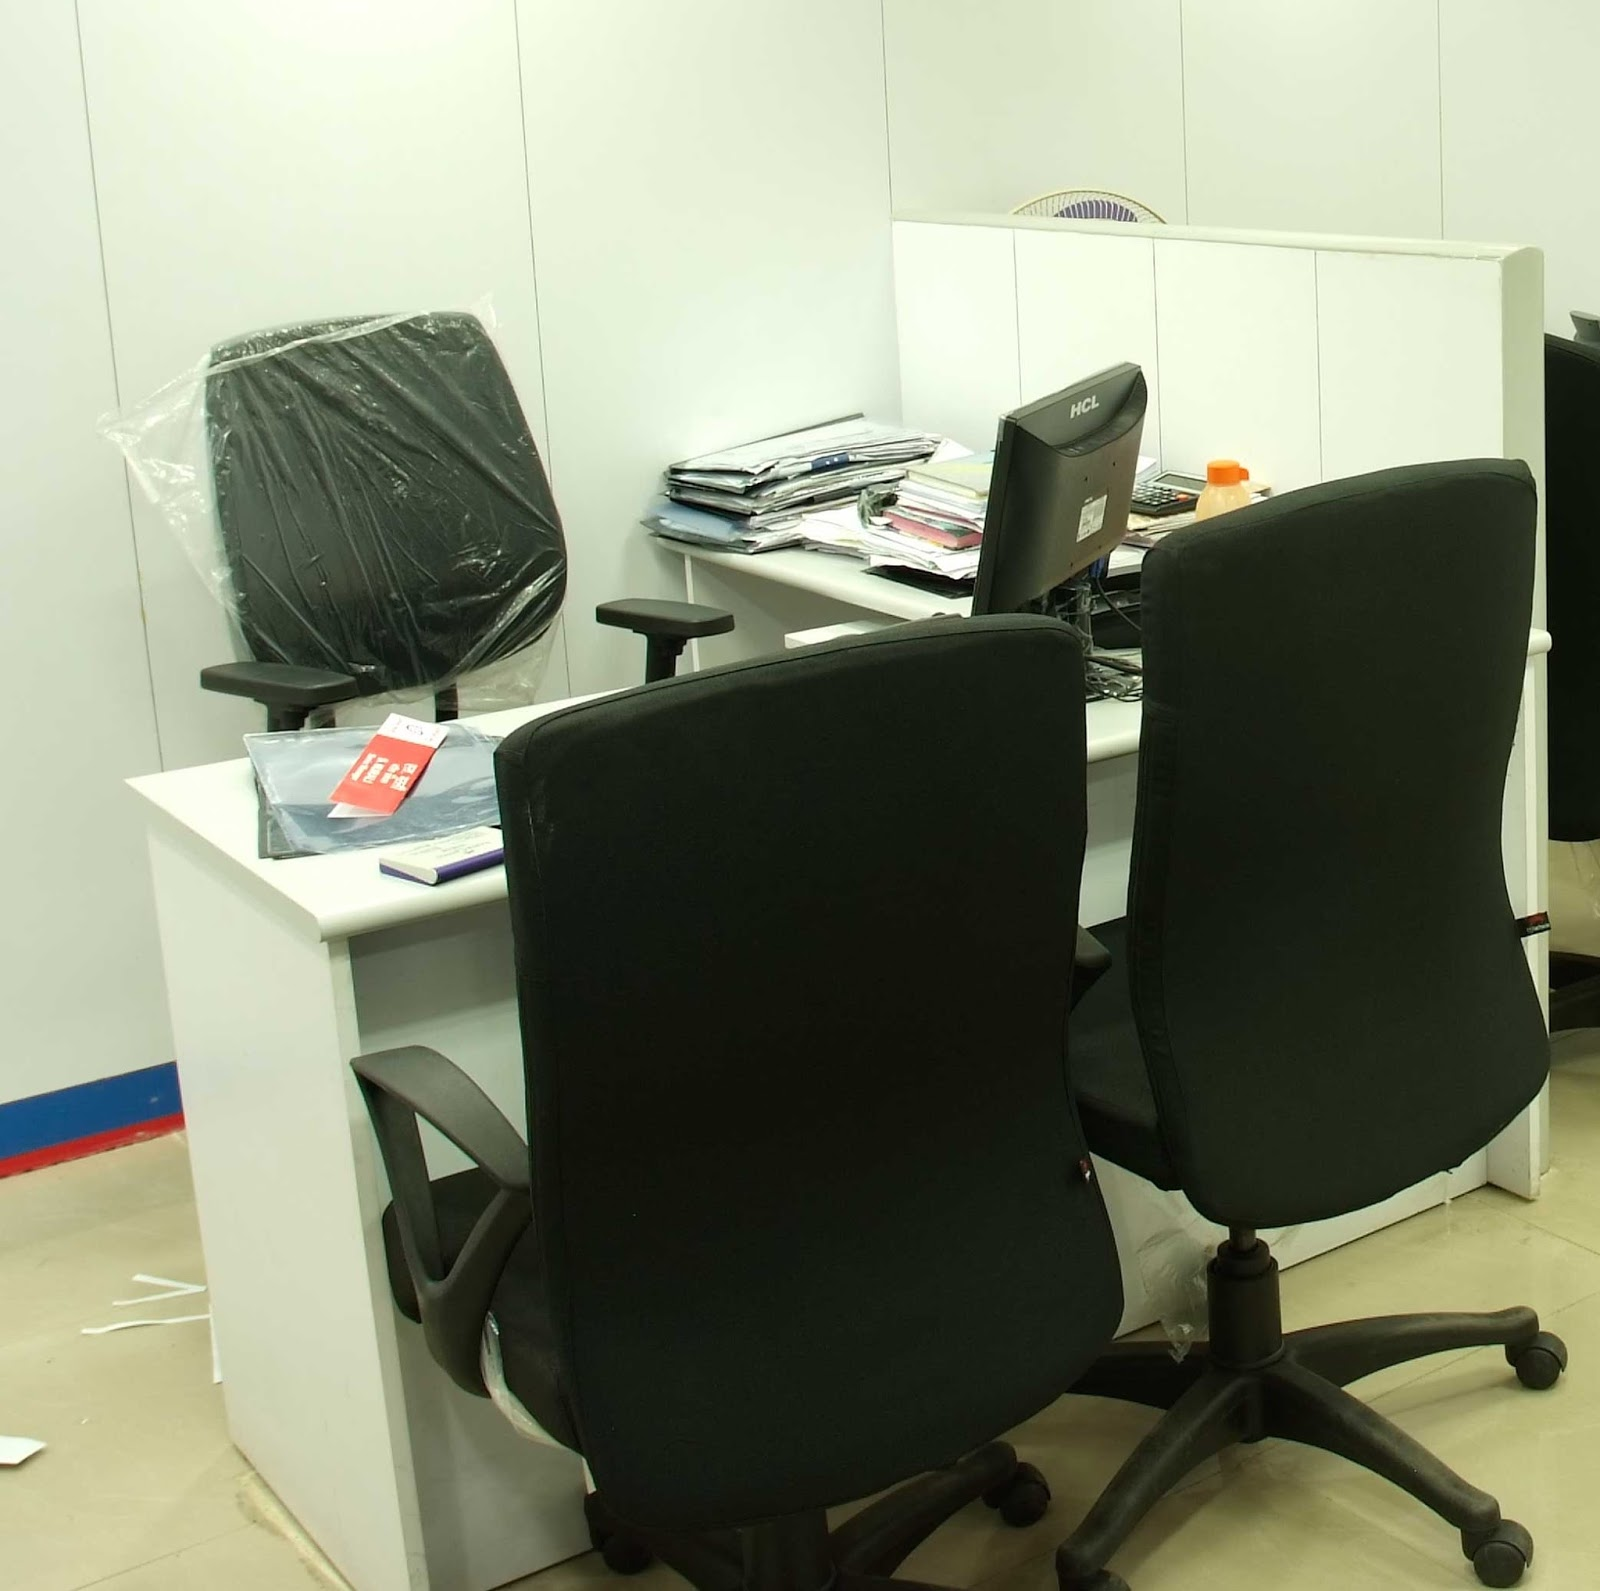 ... Wholesale Modular Office Furniture Prices, Buy Modular Office Furniture  Online Shopping, Modular Office Furniture For Sale In India , China, USA,  UK, ...